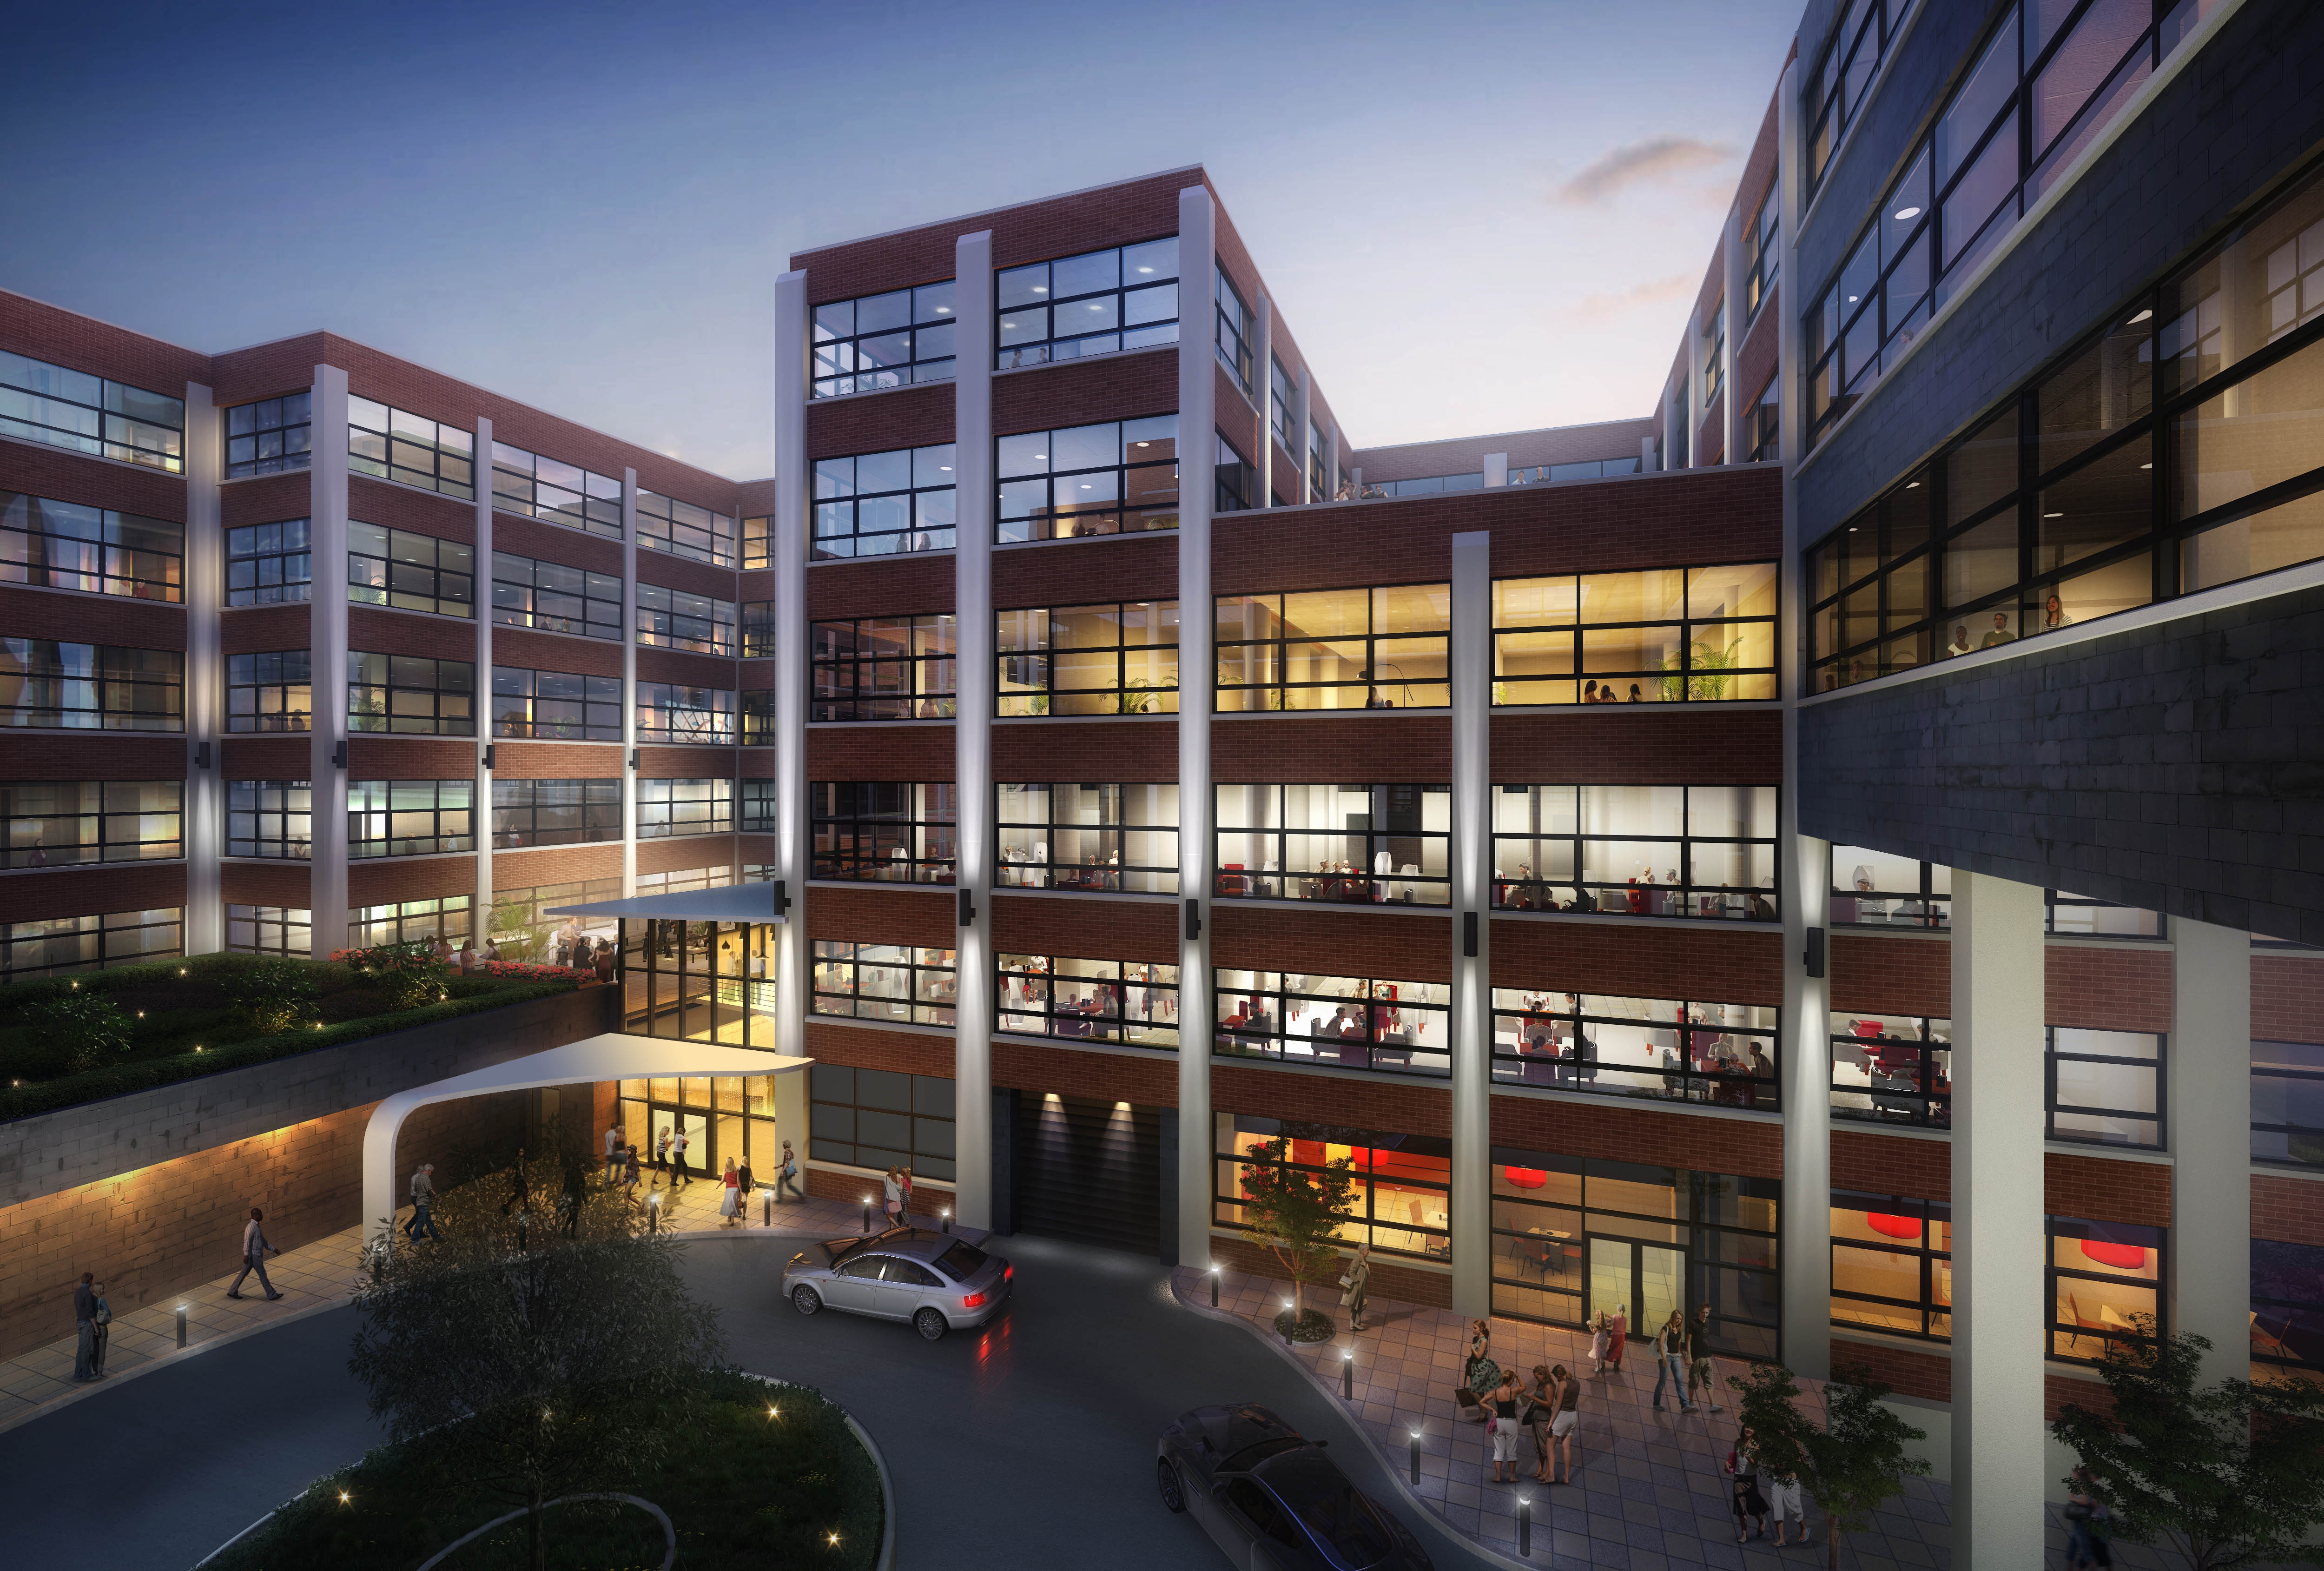 Rendering shows $90.5 million conversion of Trico building into a 114-room extended stay hotel, 150 apartments, commercial and retail space and a new Buffalo Culinary School.